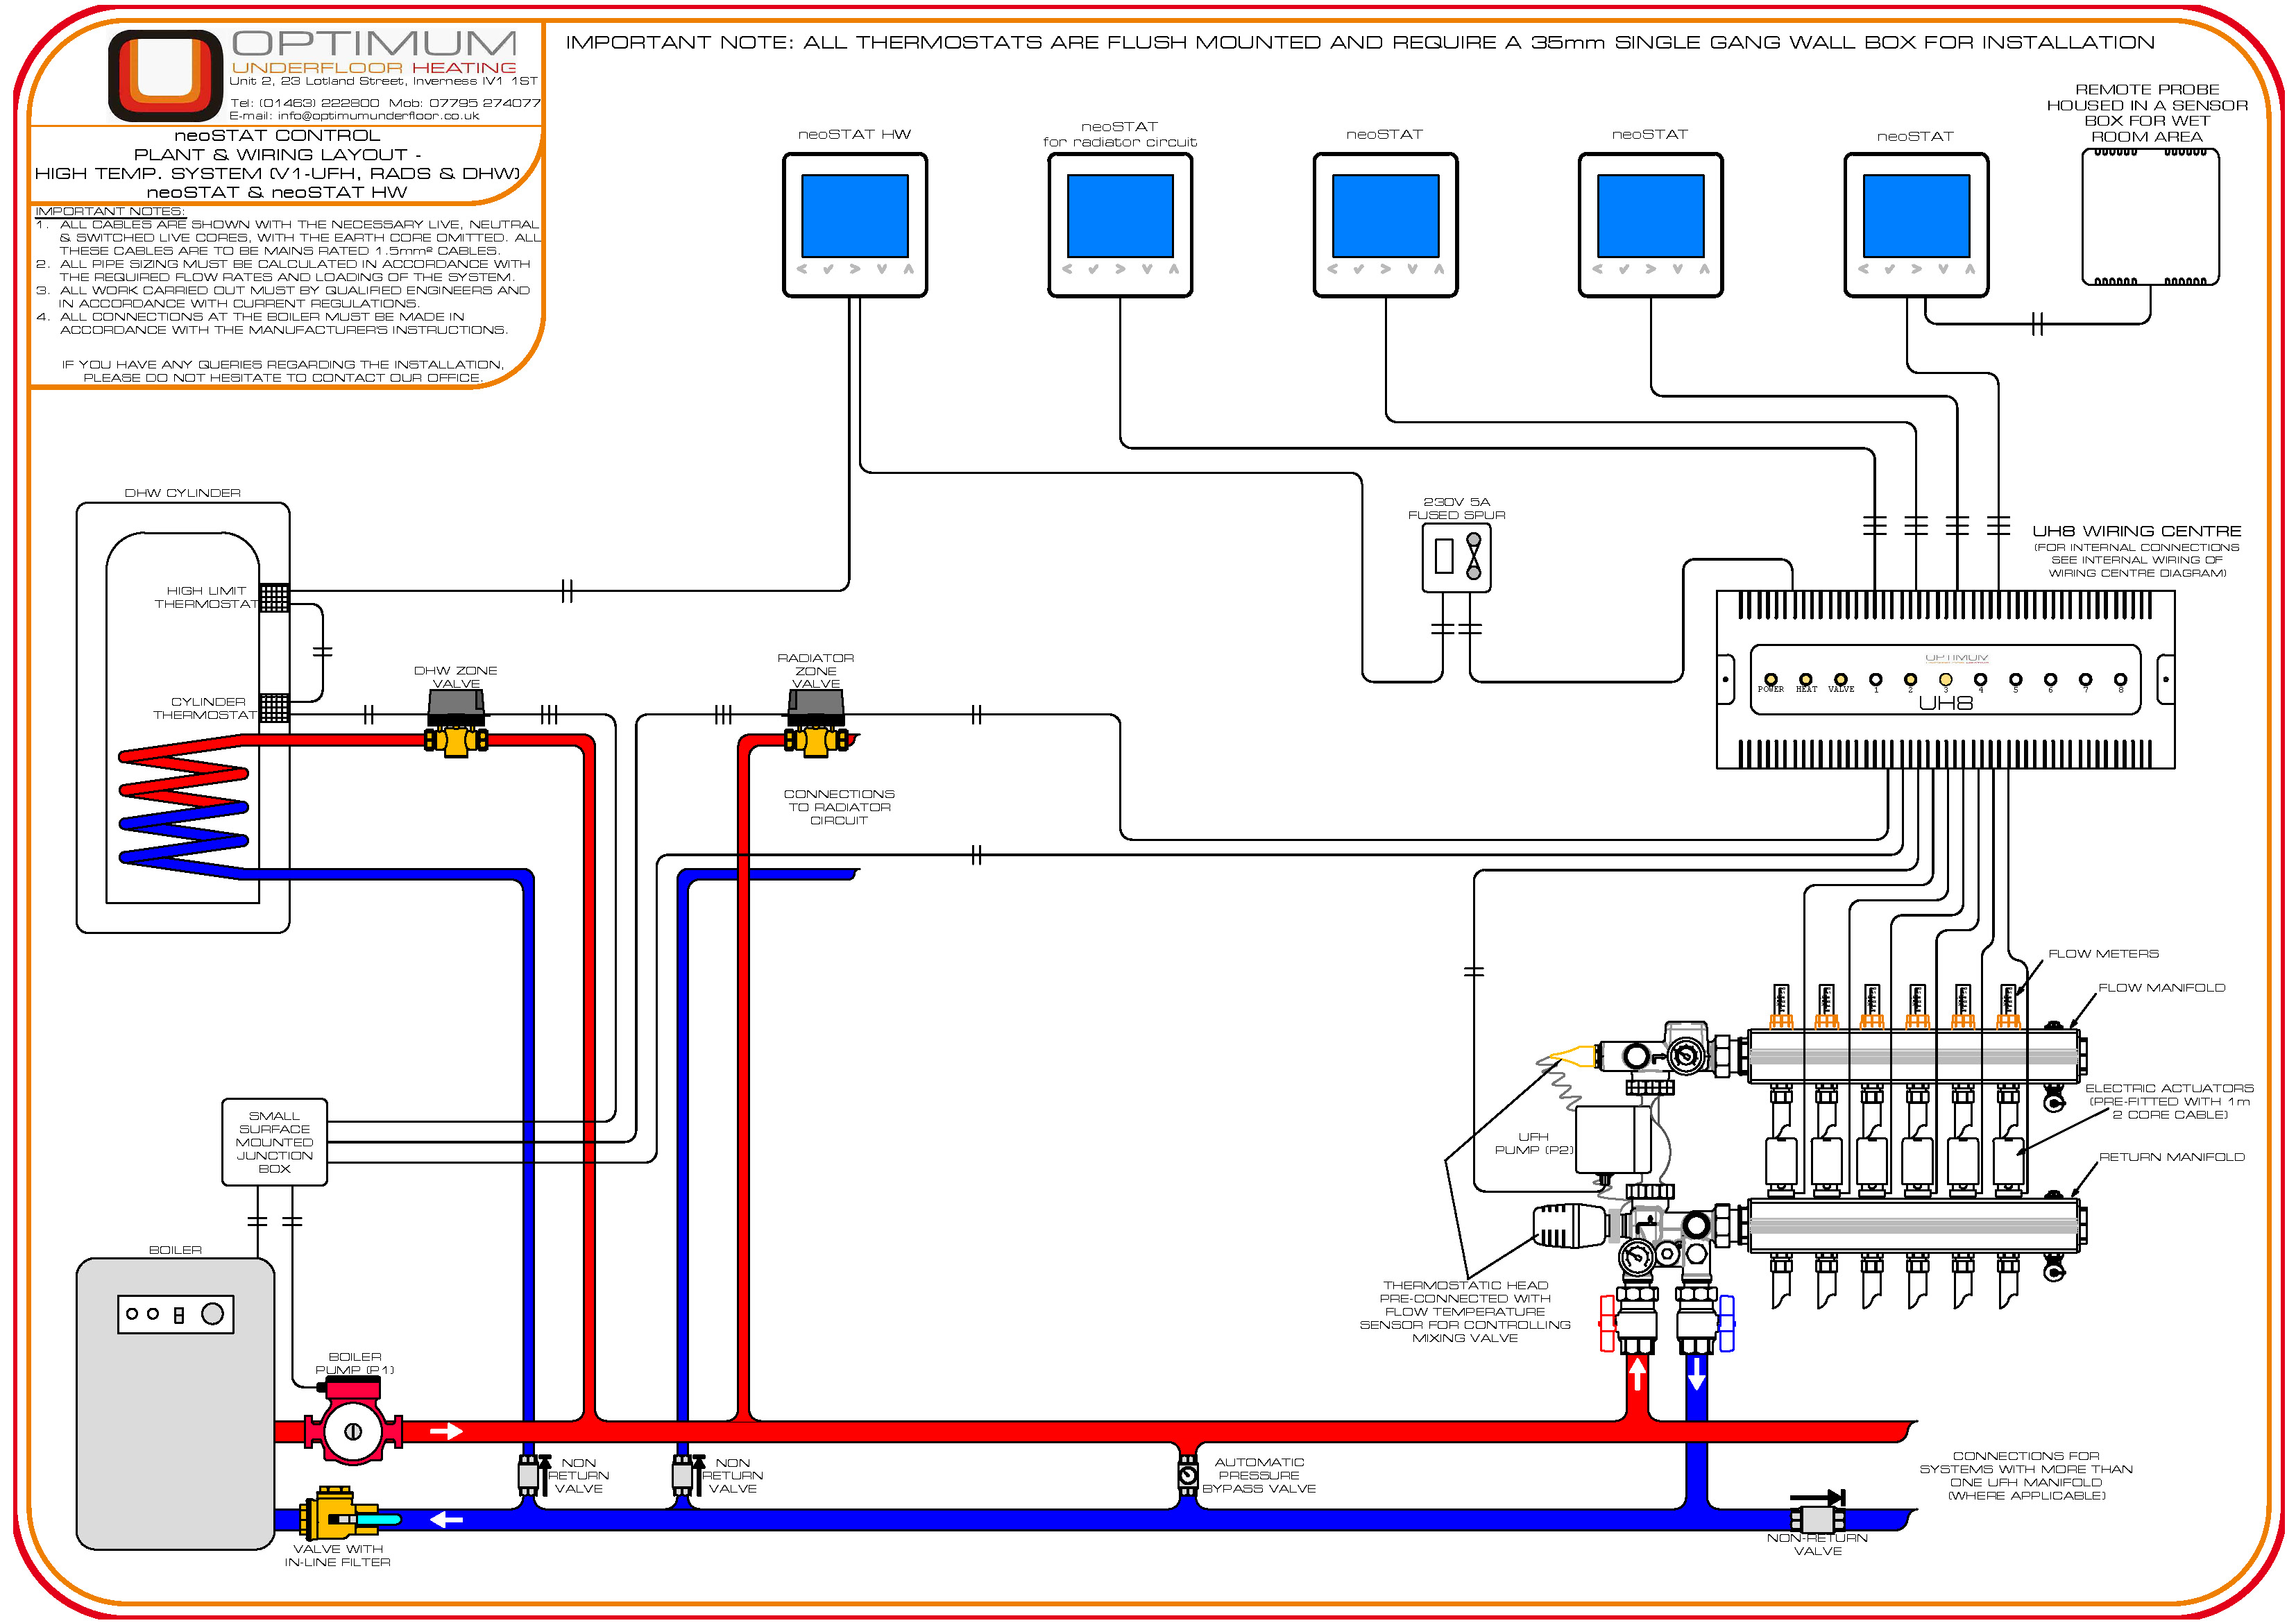 how to read a wiring diagram for controls